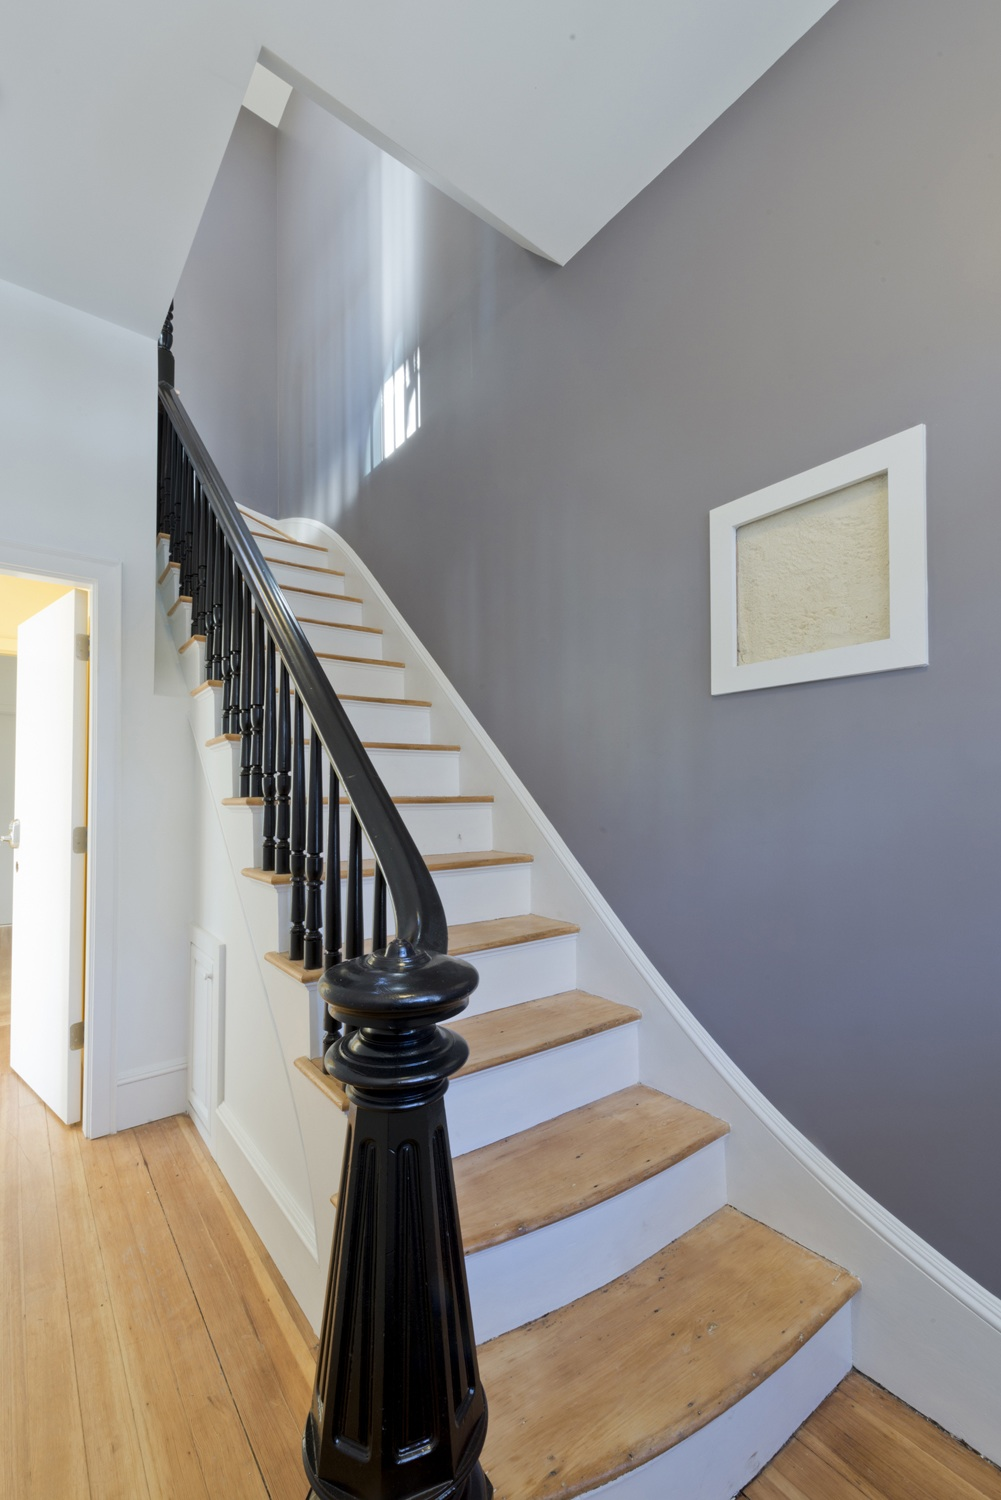 Reused stairs with historic details